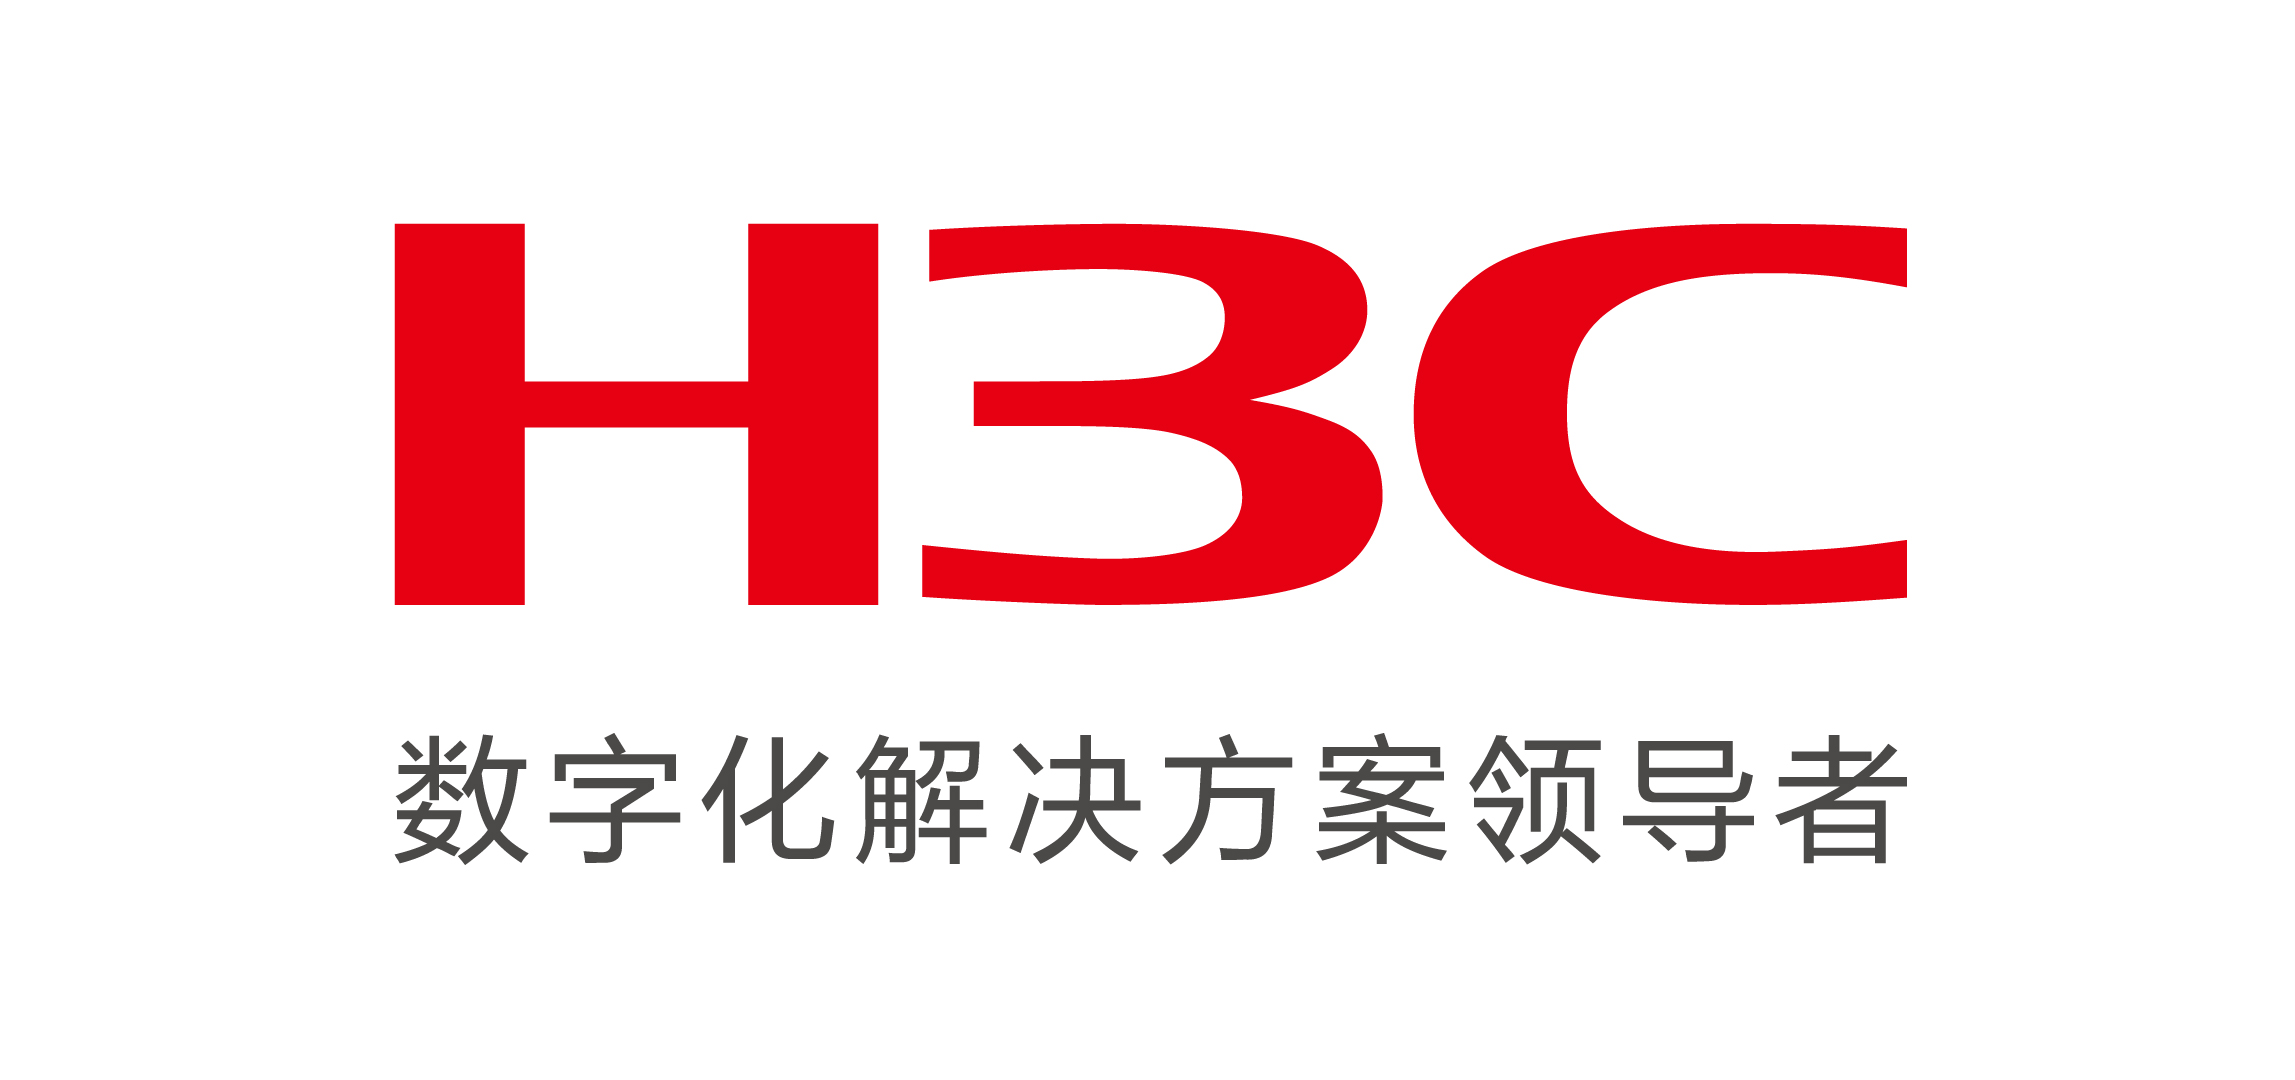 New H3C Technologies Co., Ltd